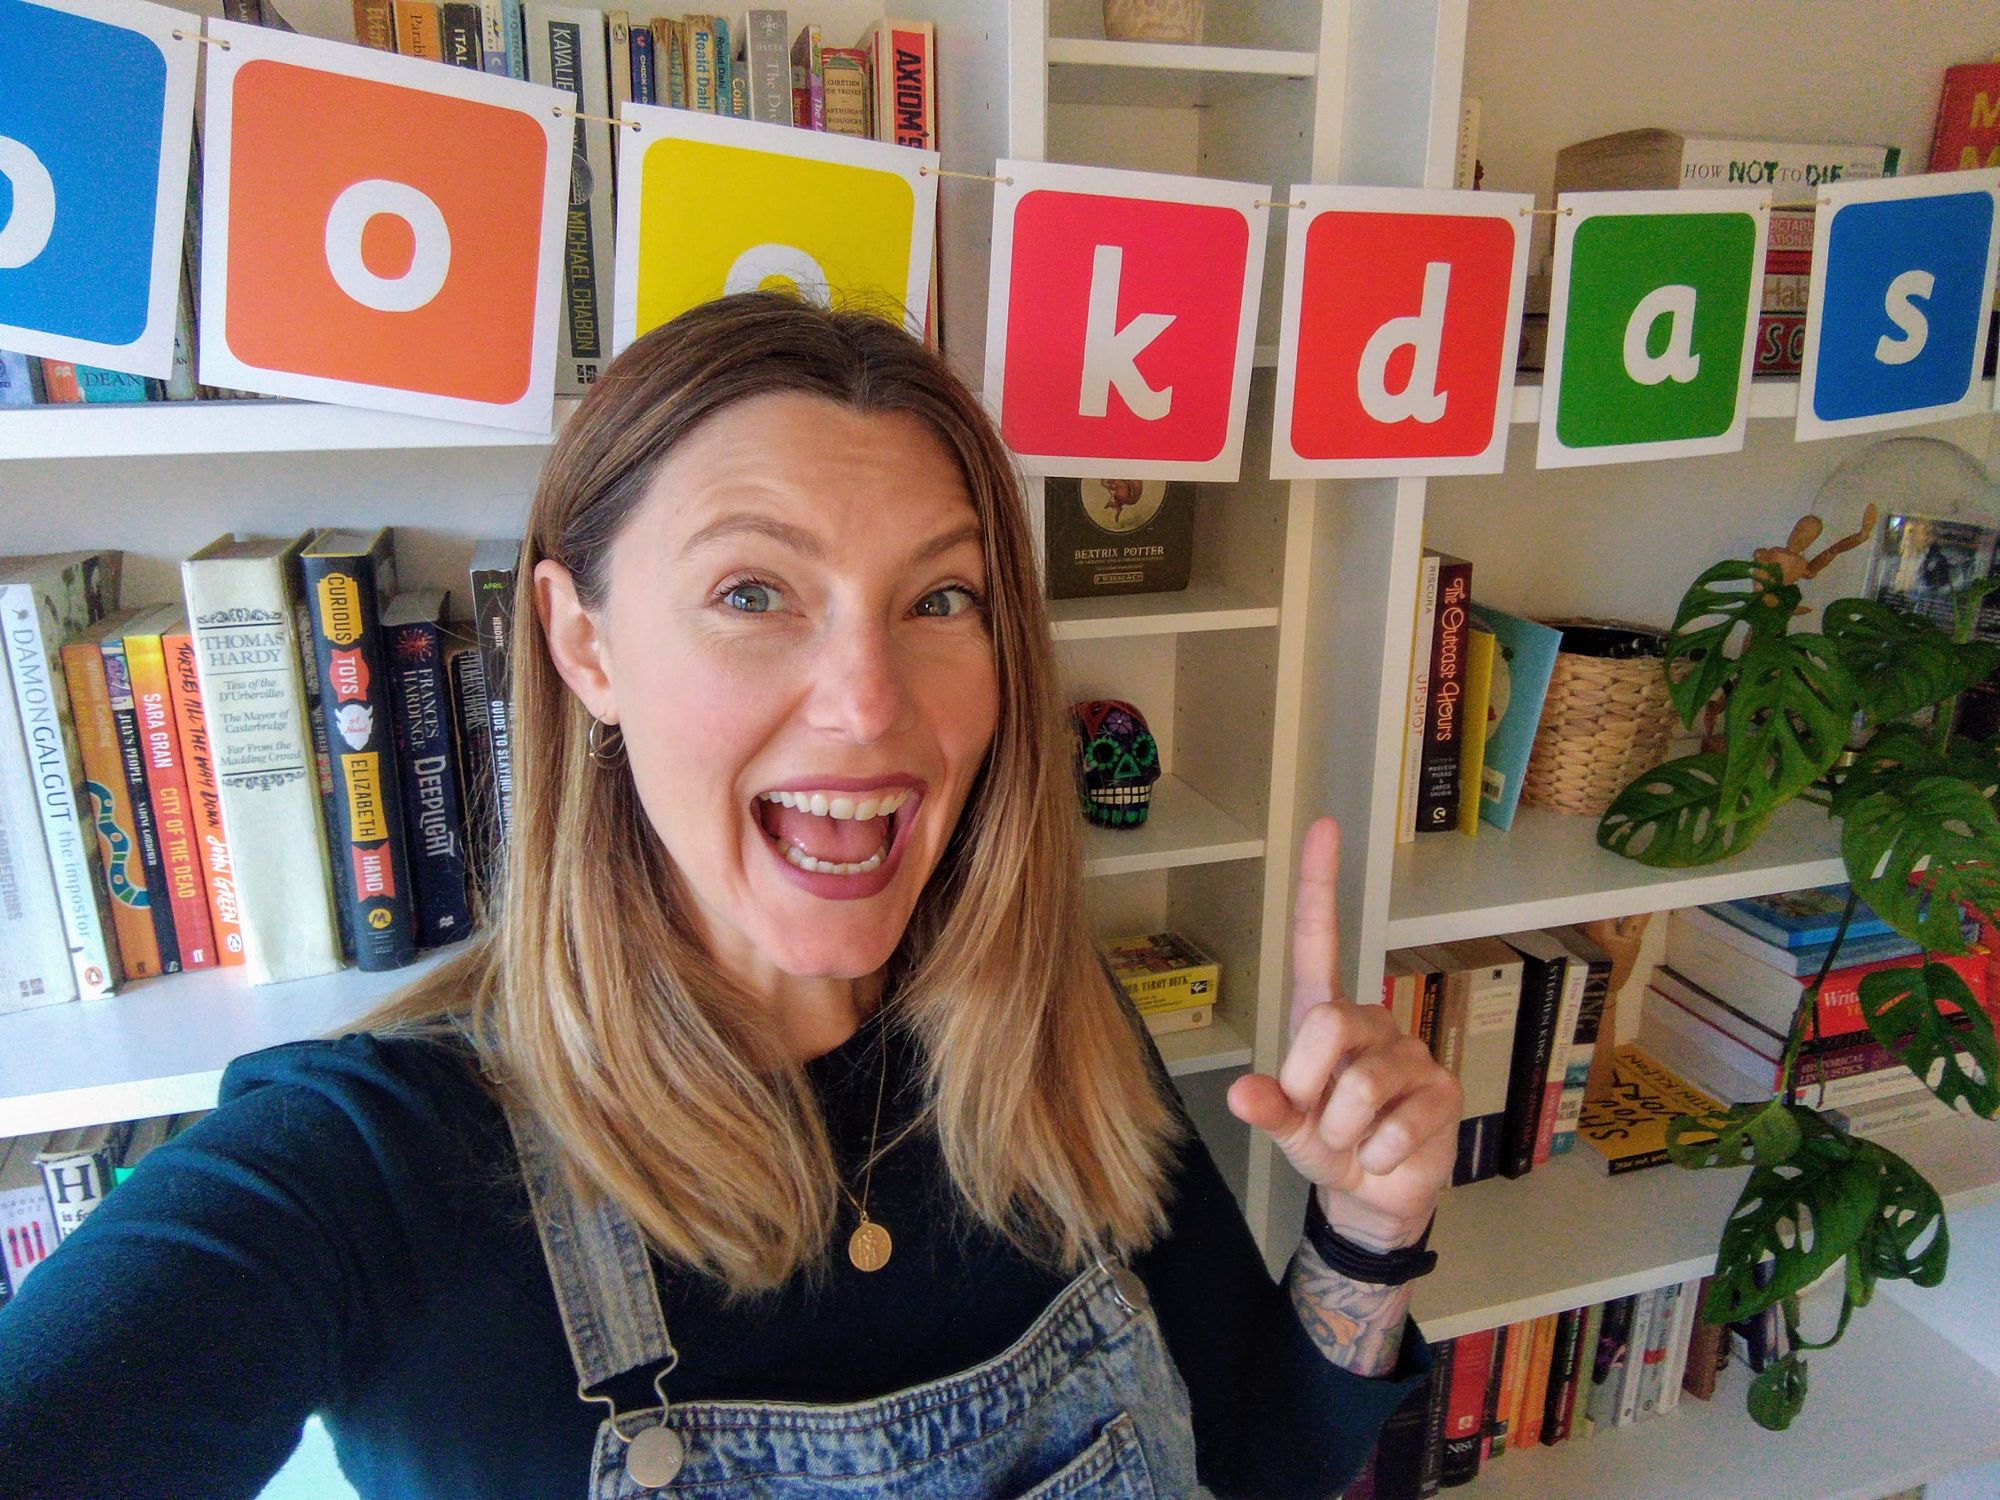 """Sam pointing at a sign that says, """"Bookdash"""""""